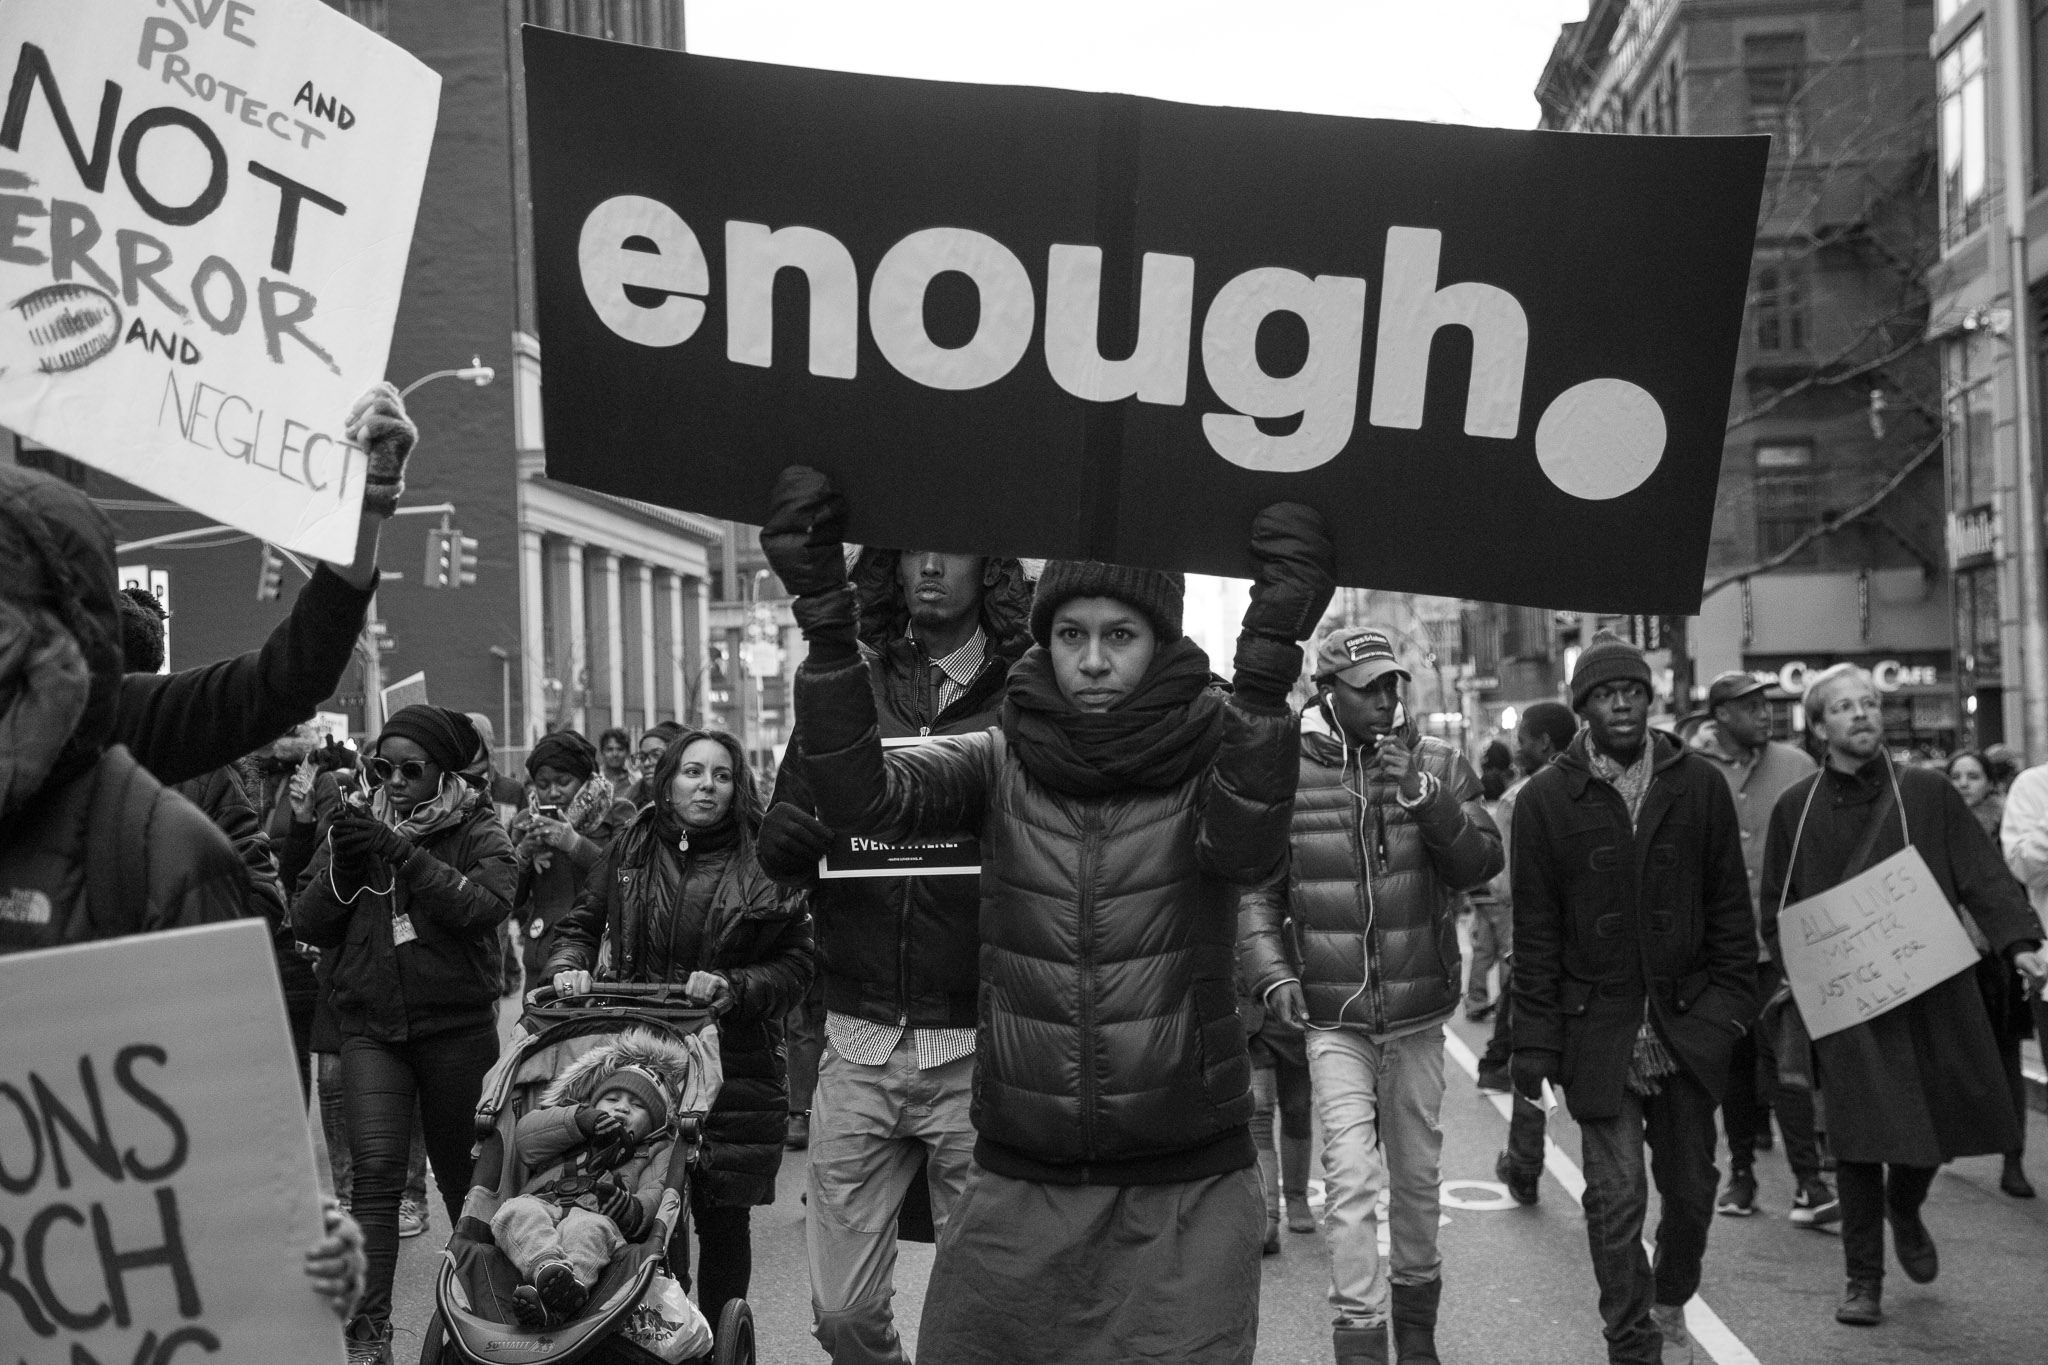 Black Lives Matter Protester carries ENOUGH sign. Photo credit Barry Yanowitz